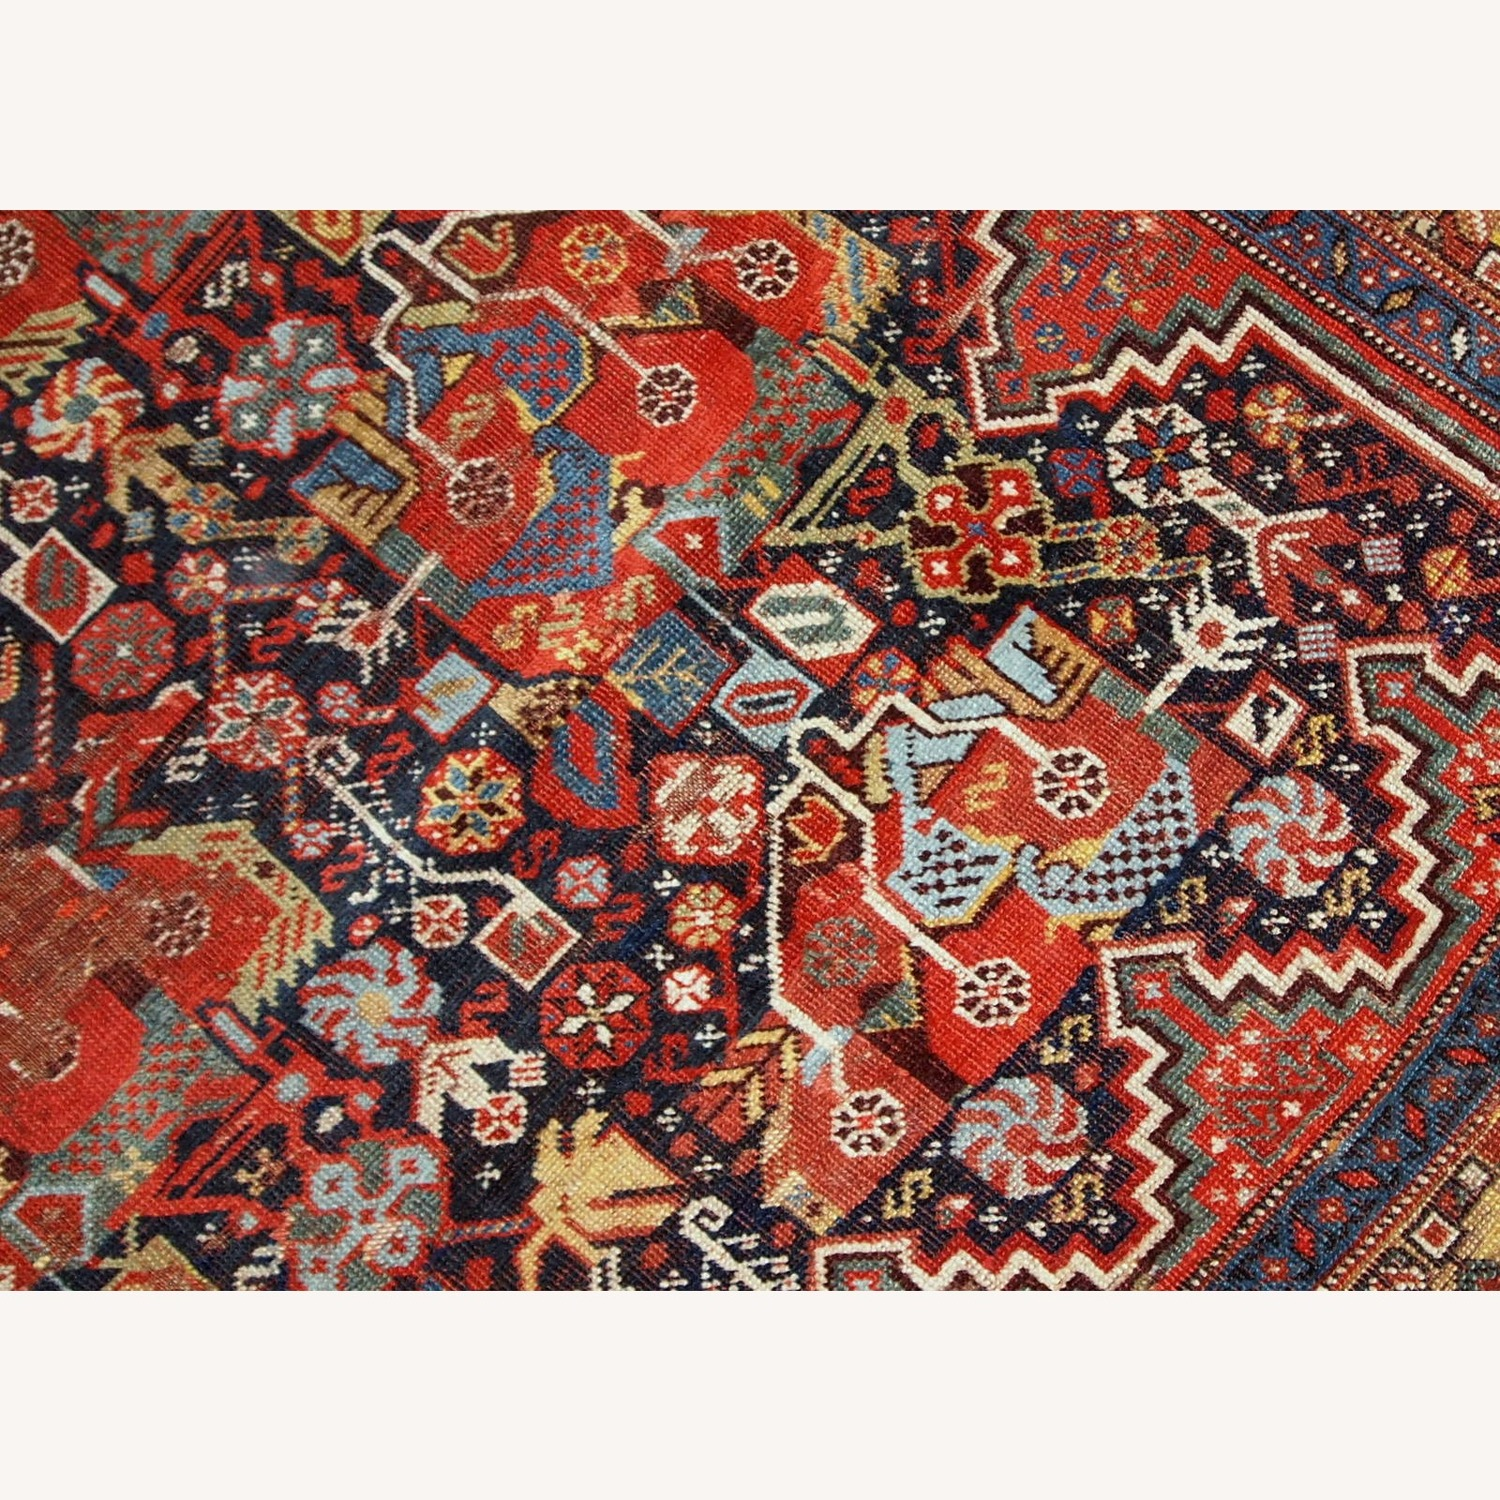 Handmade Antique Collectible Persian Khamseh Rug - image-11